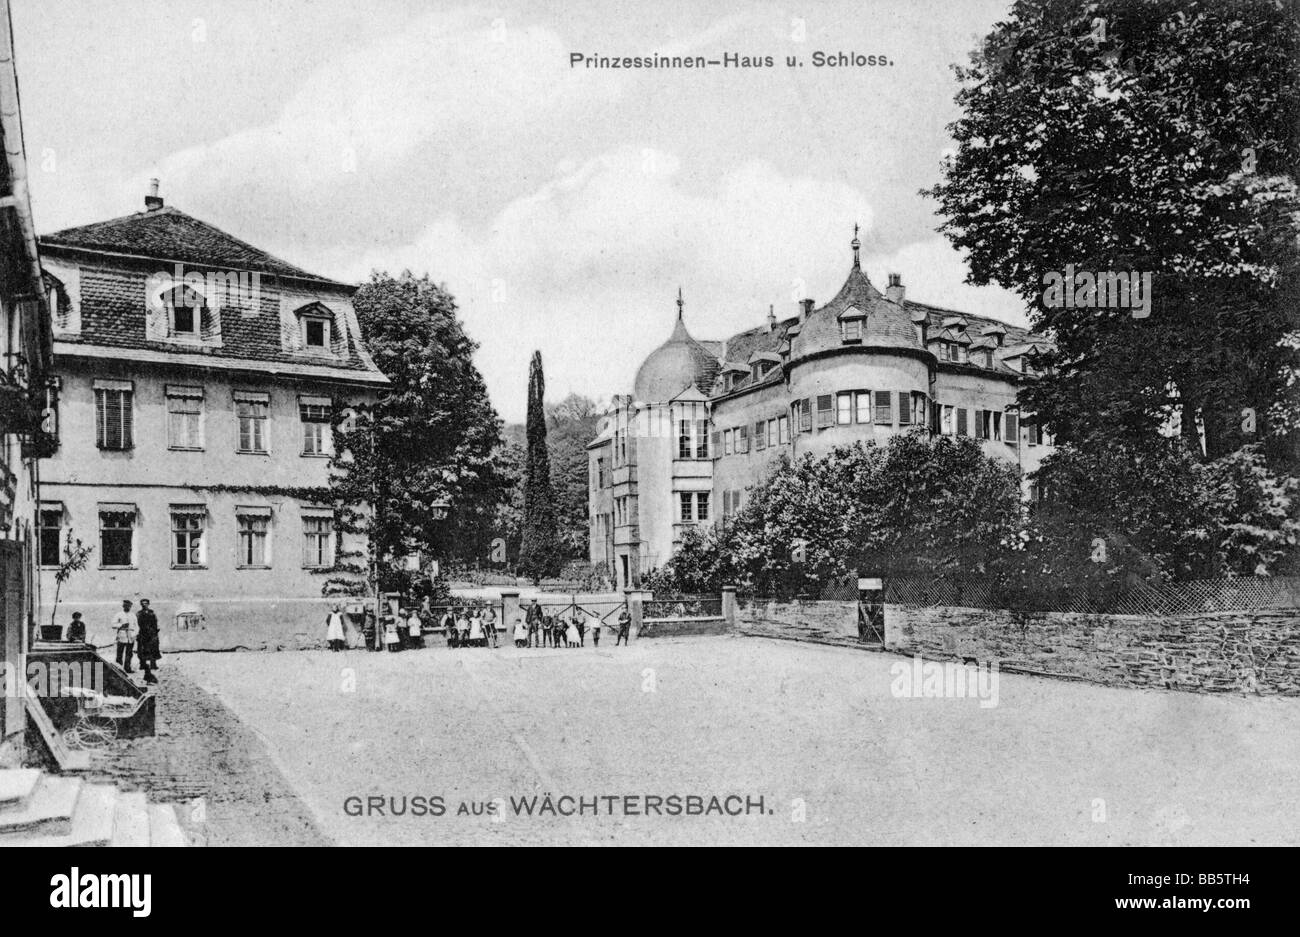 geography / travel, Germany, Waechtersbach, Castle and Princesses House, exterior view, postcard, published by Karl - Stock Image